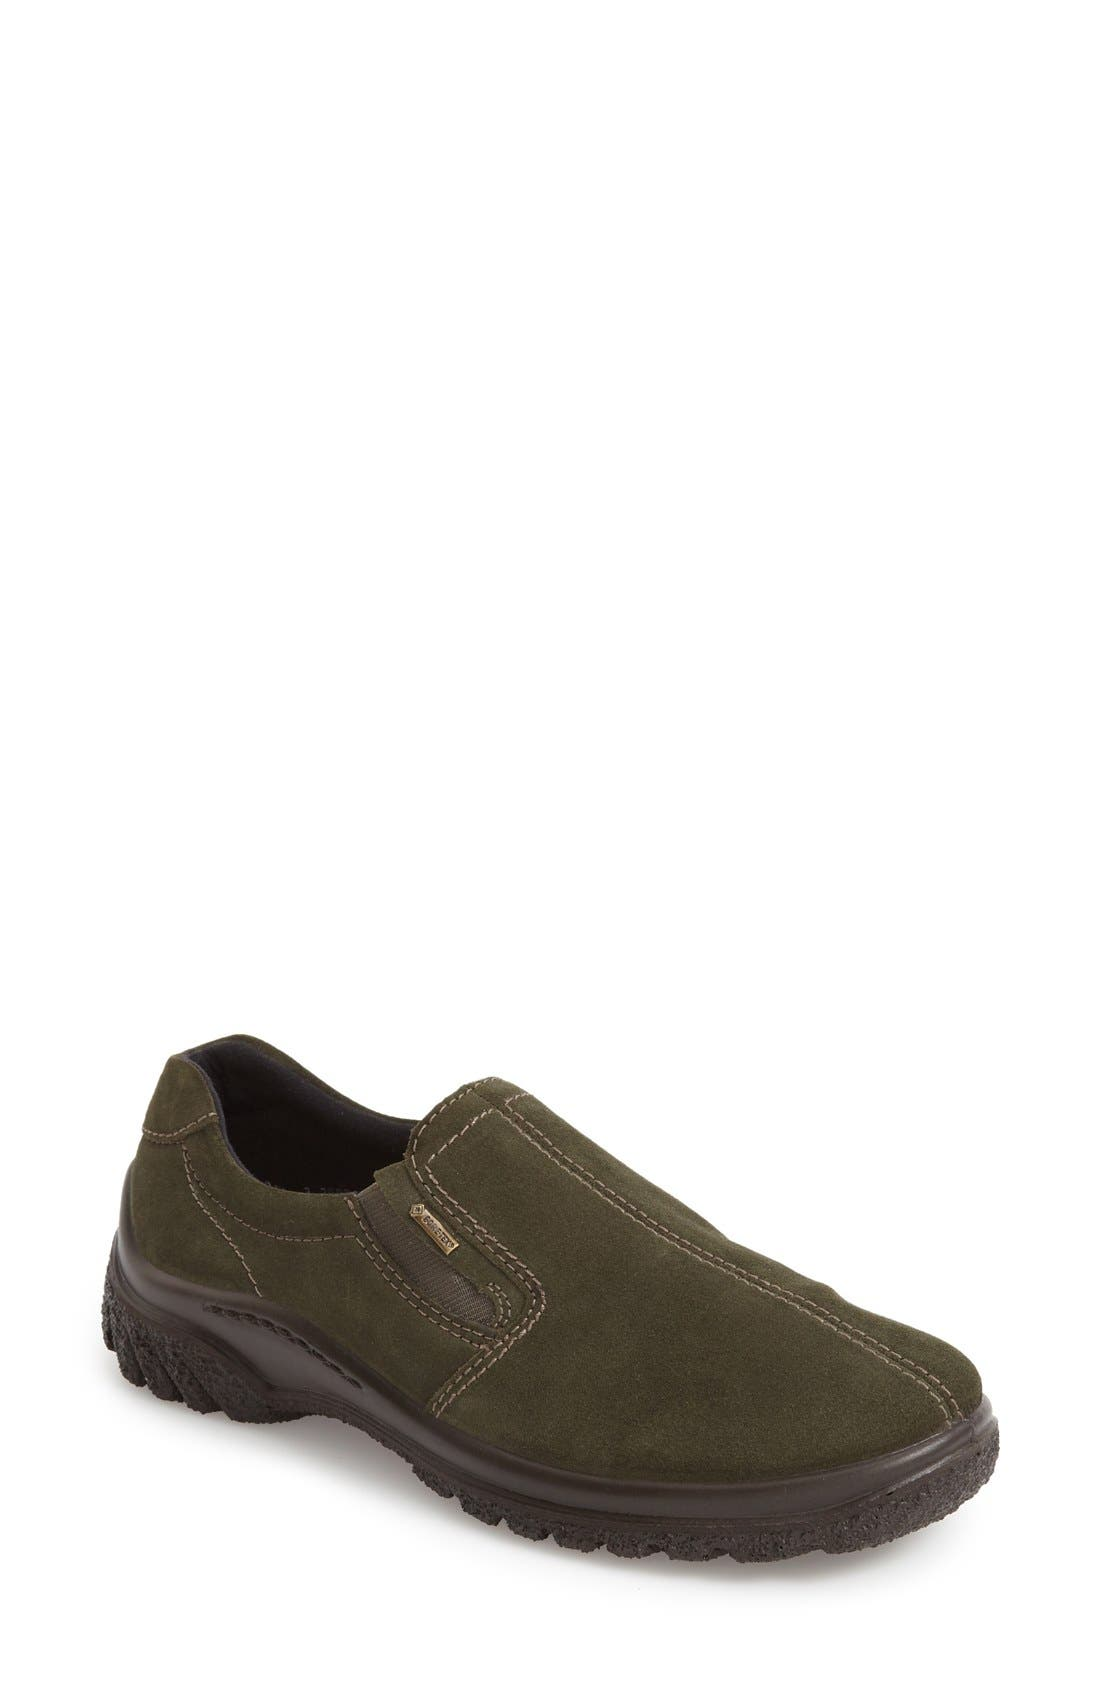 Parson Waterproof Gore-Tex<sup>®</sup> Slip-On Sneaker,                             Main thumbnail 1, color,                             Olive Suede